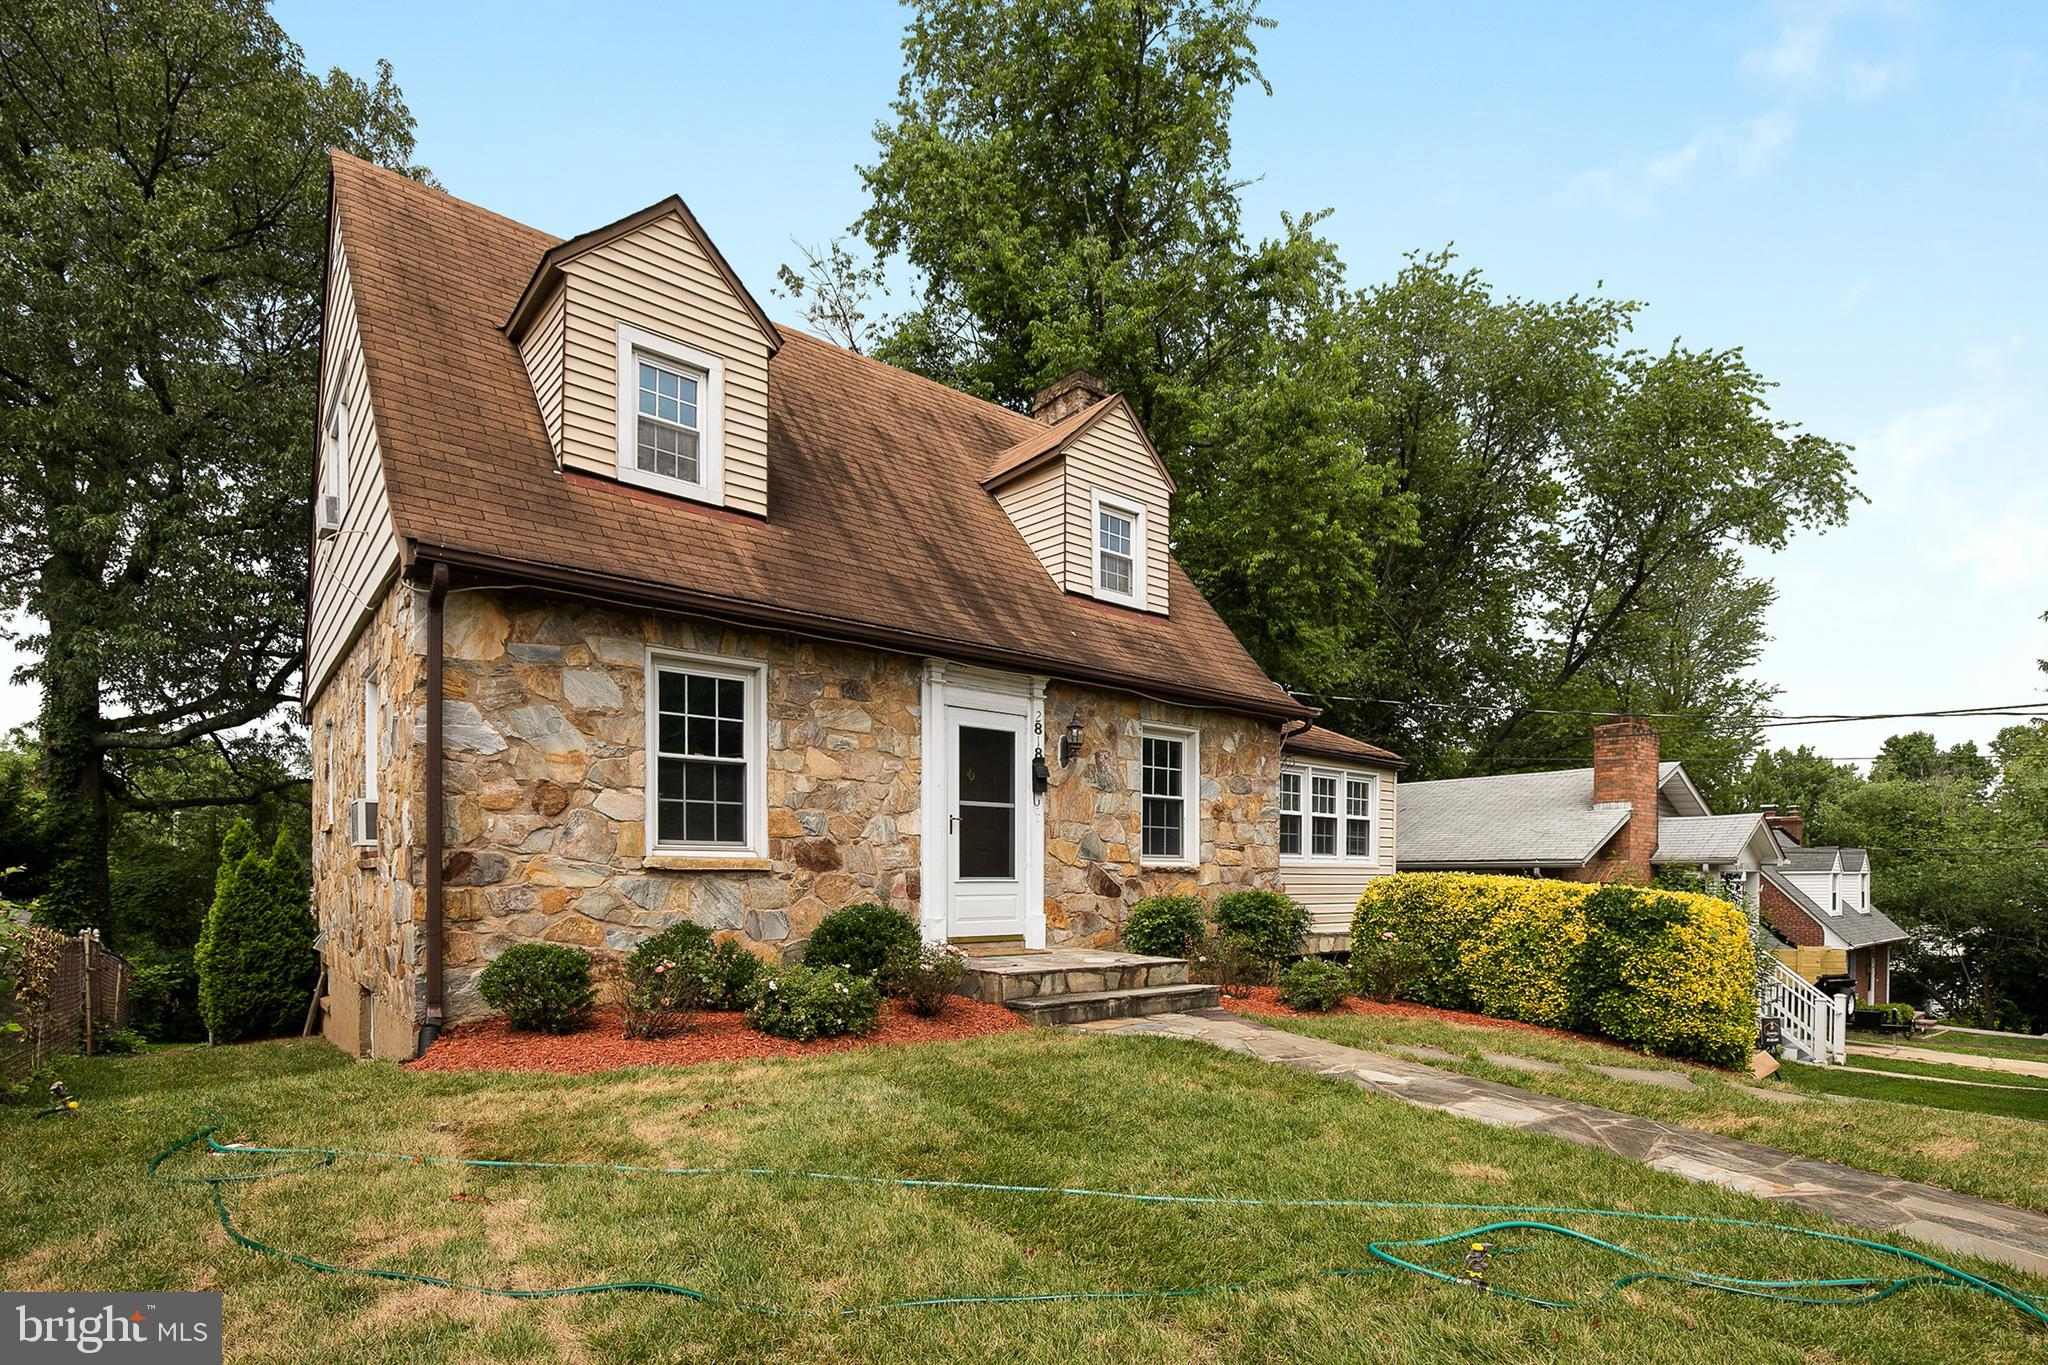 Enchanting stone Cape Cod in the quiet and friendly Greenway Downs neighborhood of Falls Church.  Original hardwood floors on the main level. Living room features a wood burning fireplace with stone mantel. Finished lower level has a kitchenette and can serve as a rec room or in law suite.  Bonus room added over garage.  One car garage and driveway for off street parking.  Conveniently close to Dining and shopping. Just minutes to beltway via 29 or 50.